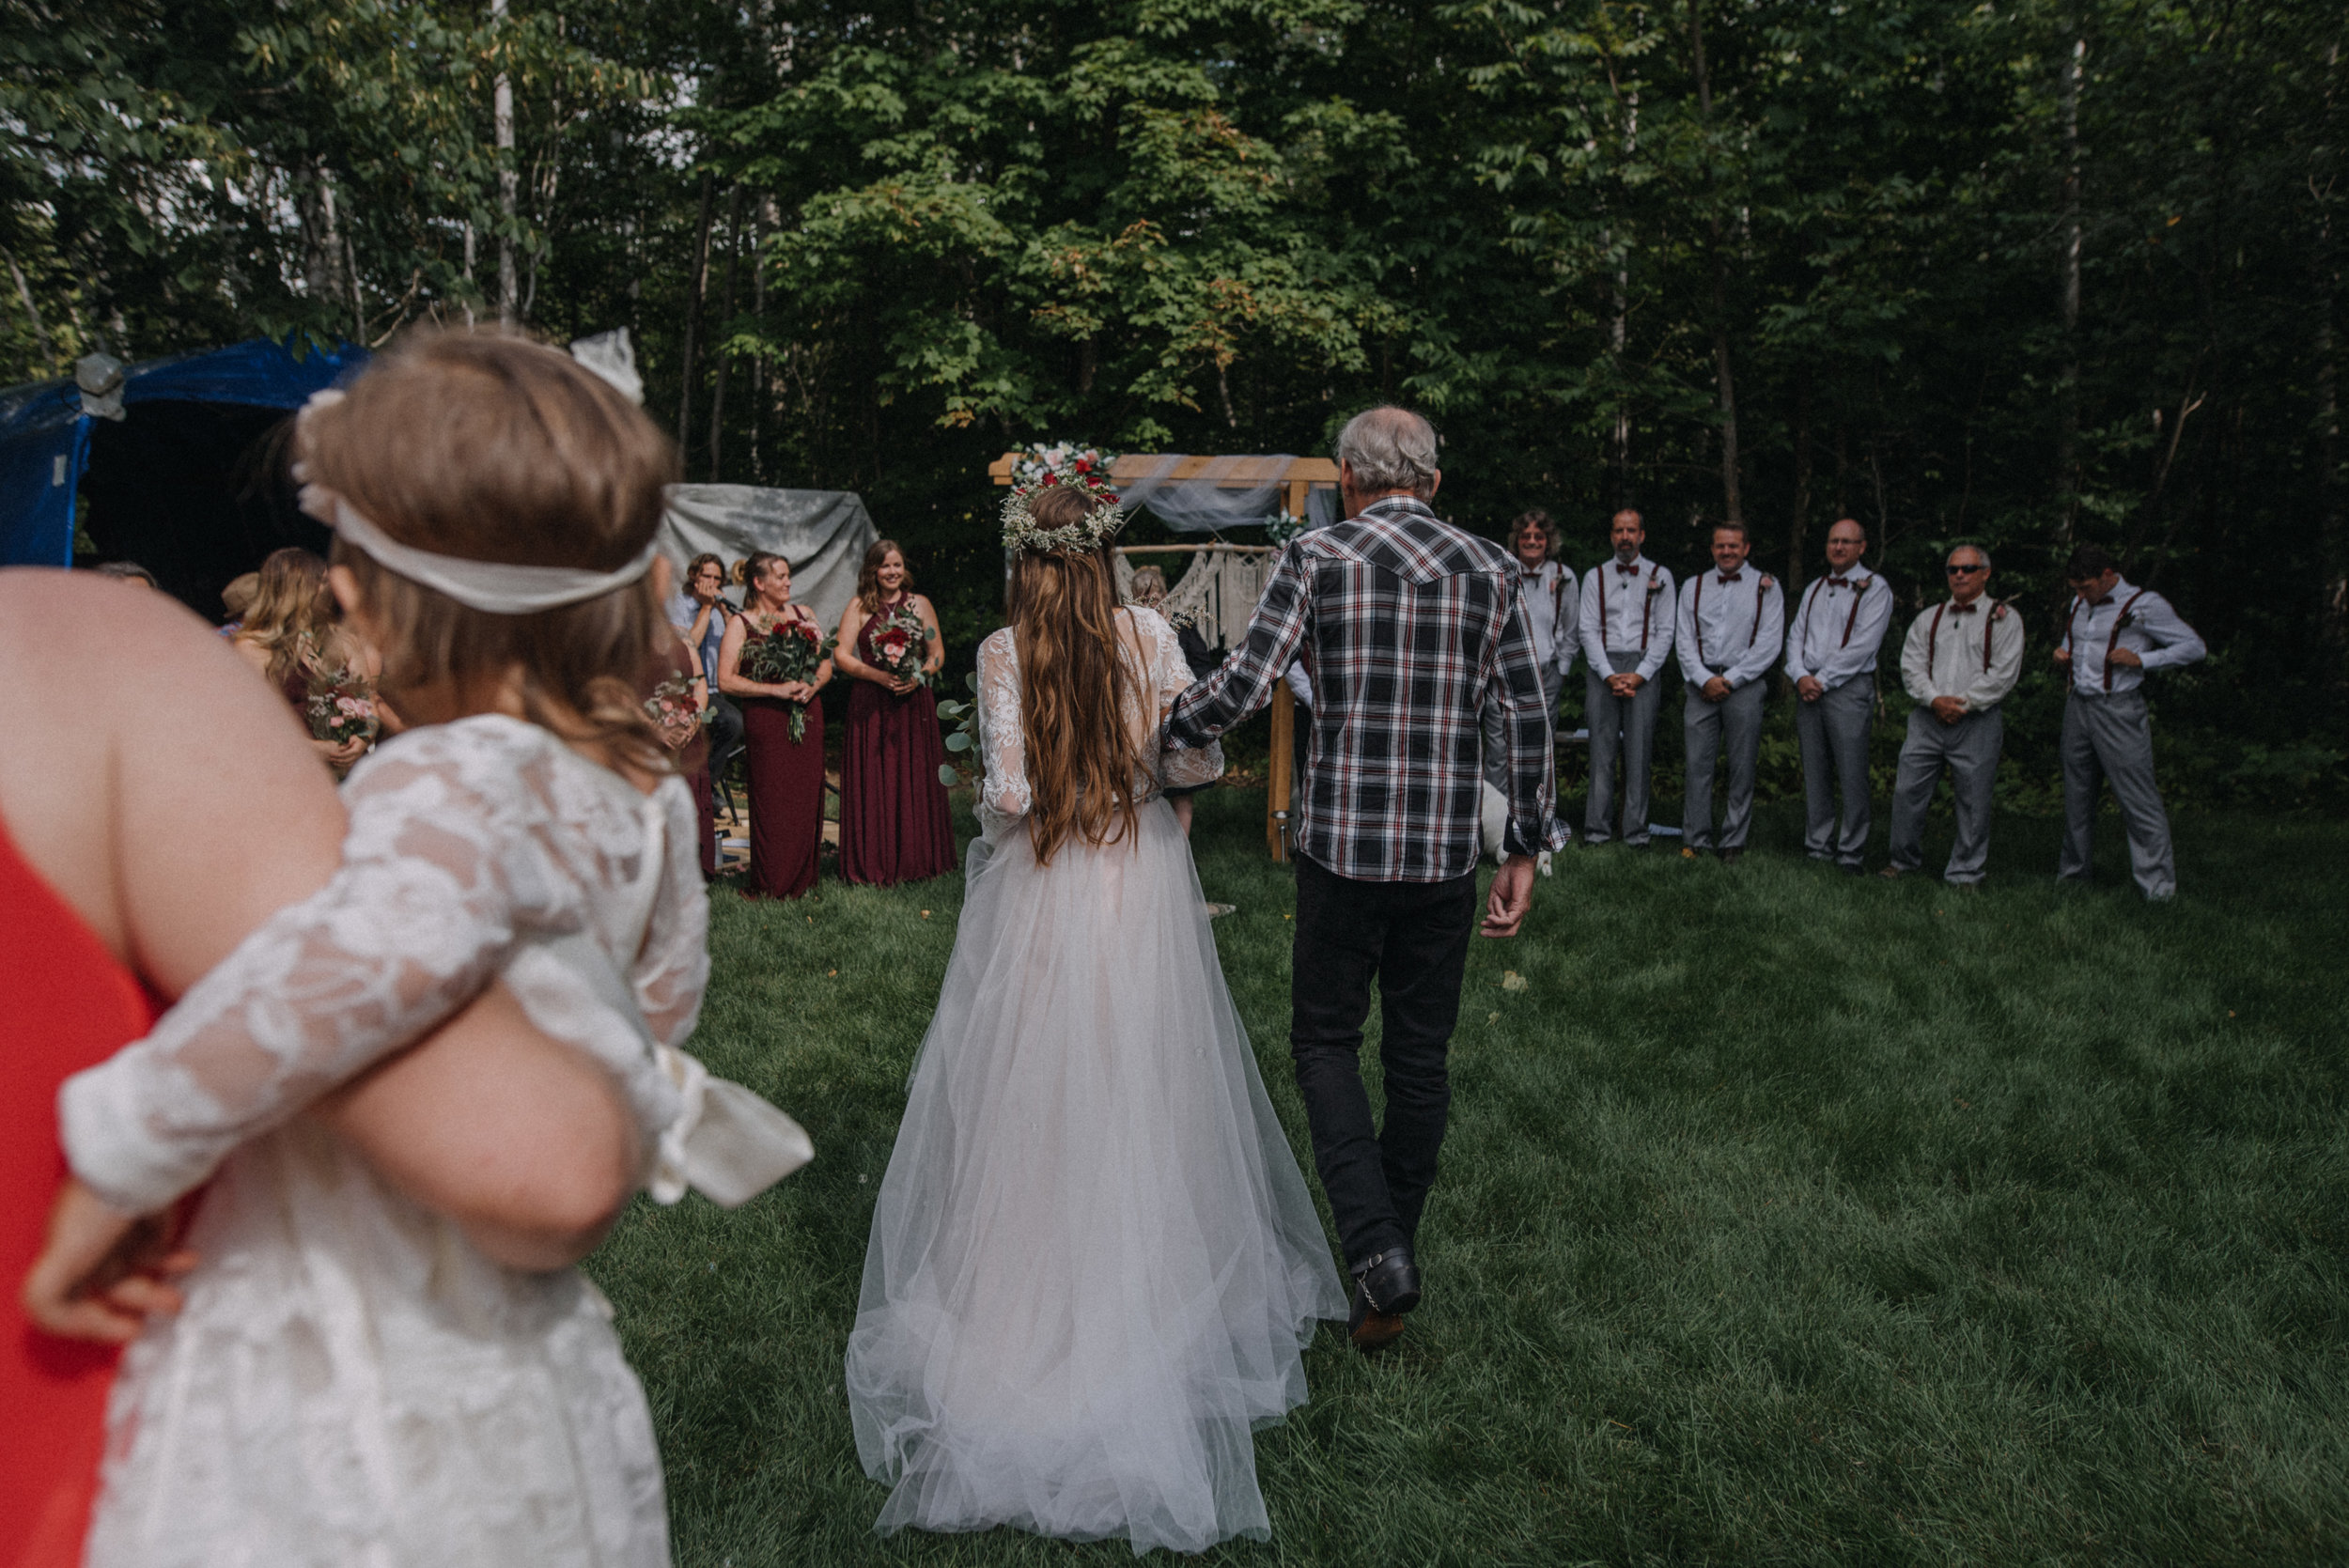 ottawa_wedding_photographer_gatineau_photographe_mariage_documentary_candid_photojournalist_natural_raw_boho_wedding_backyard (15).JPG